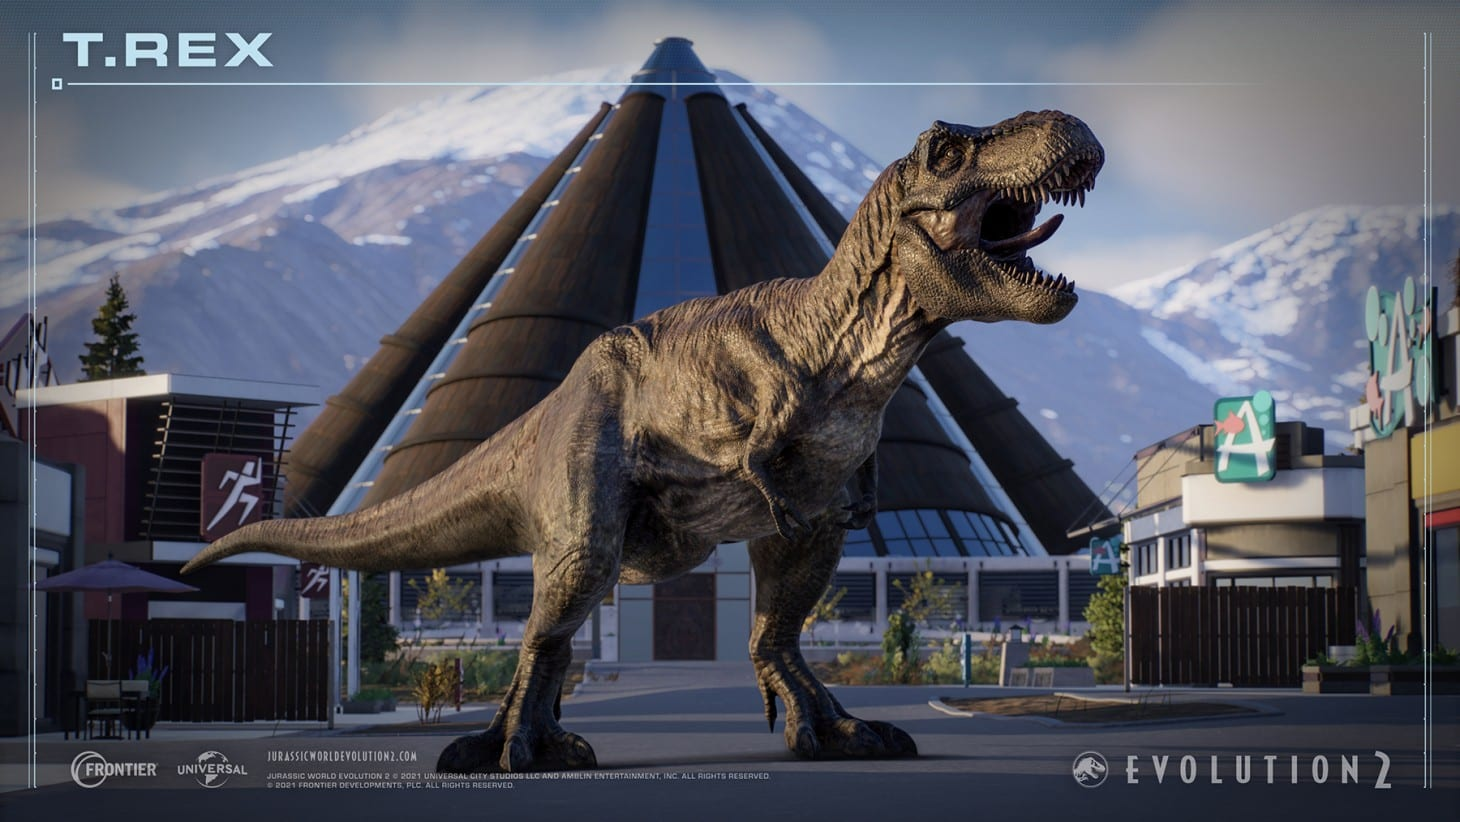 Jurassic World Evolution 2 Game Release Date, Trailer And Everything We Know So Far